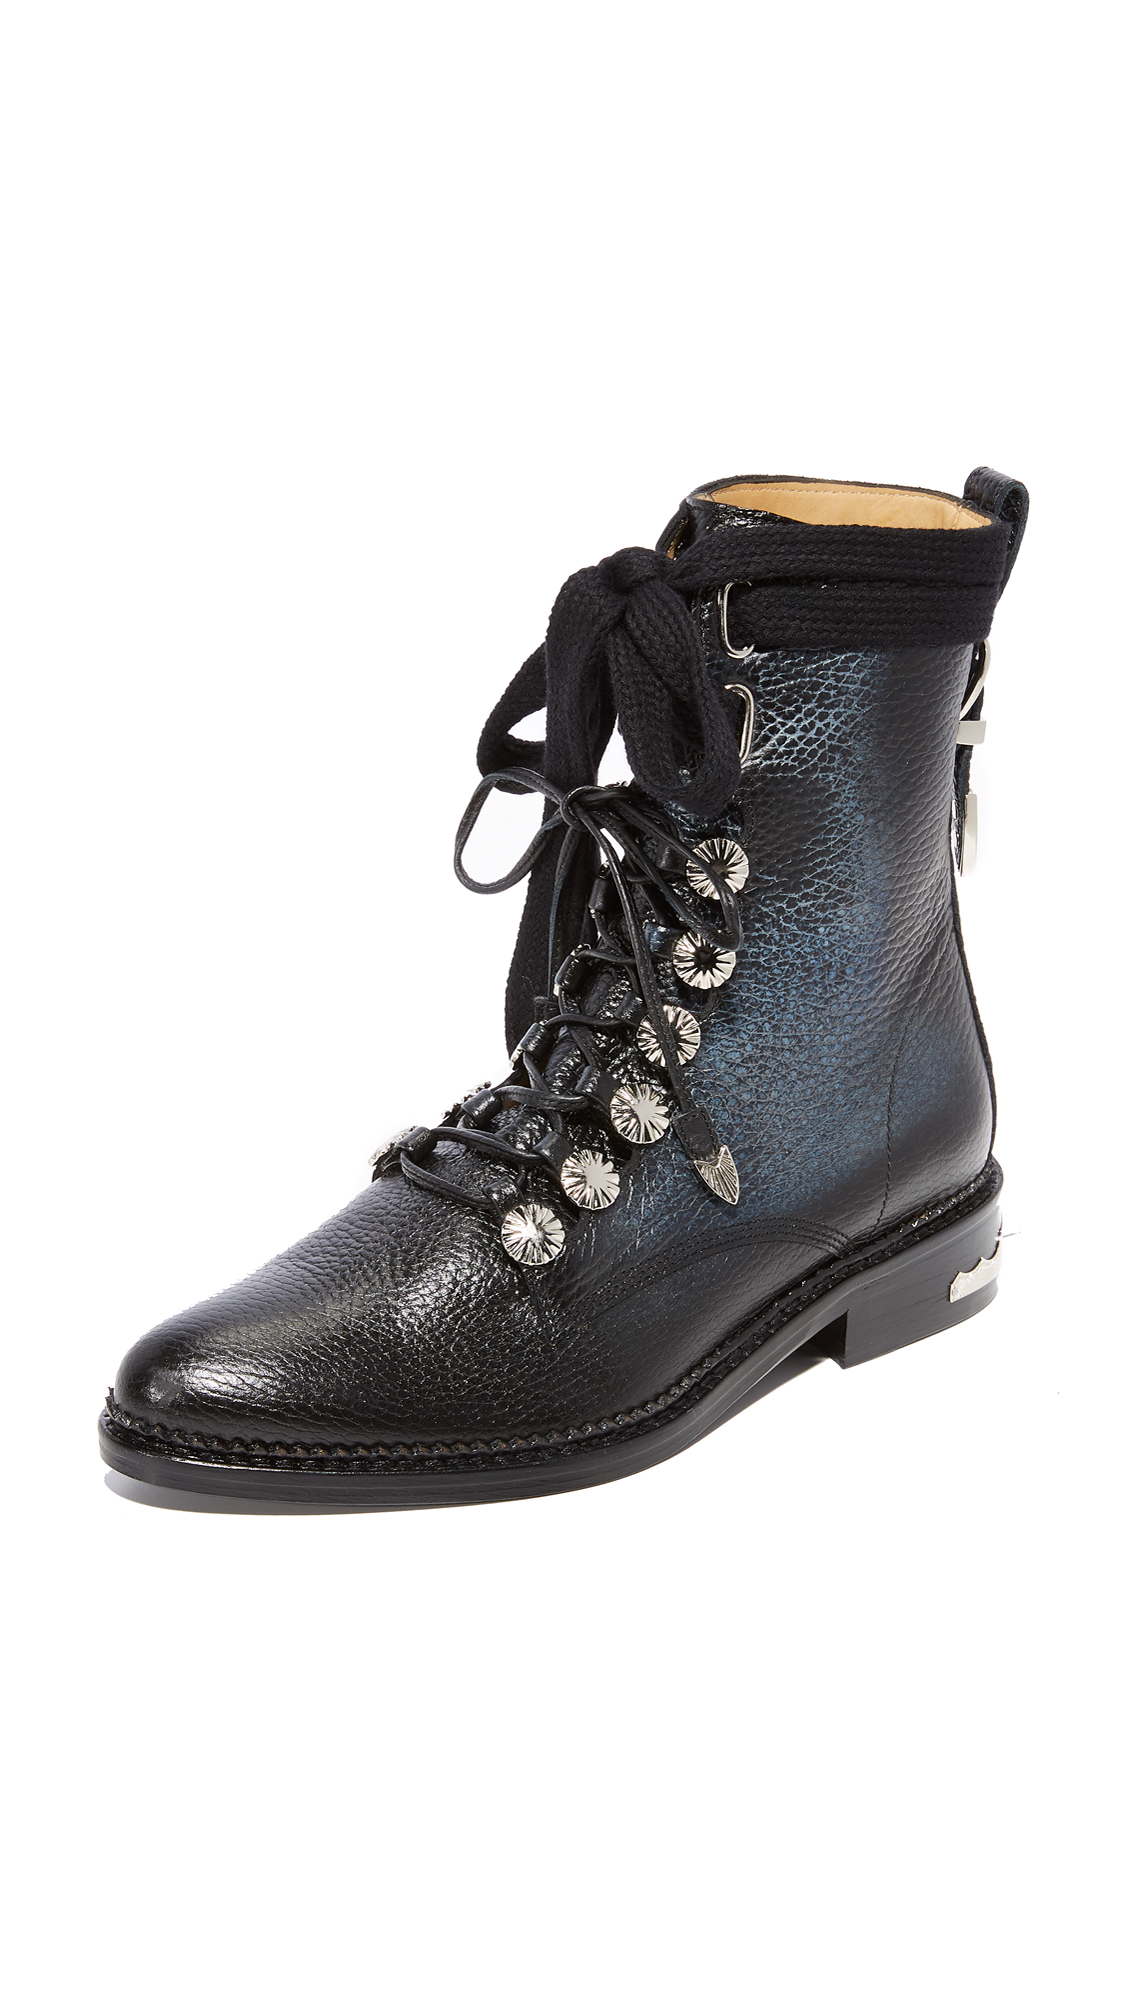 Toga Pulla Pebbled Combat Boots - Black